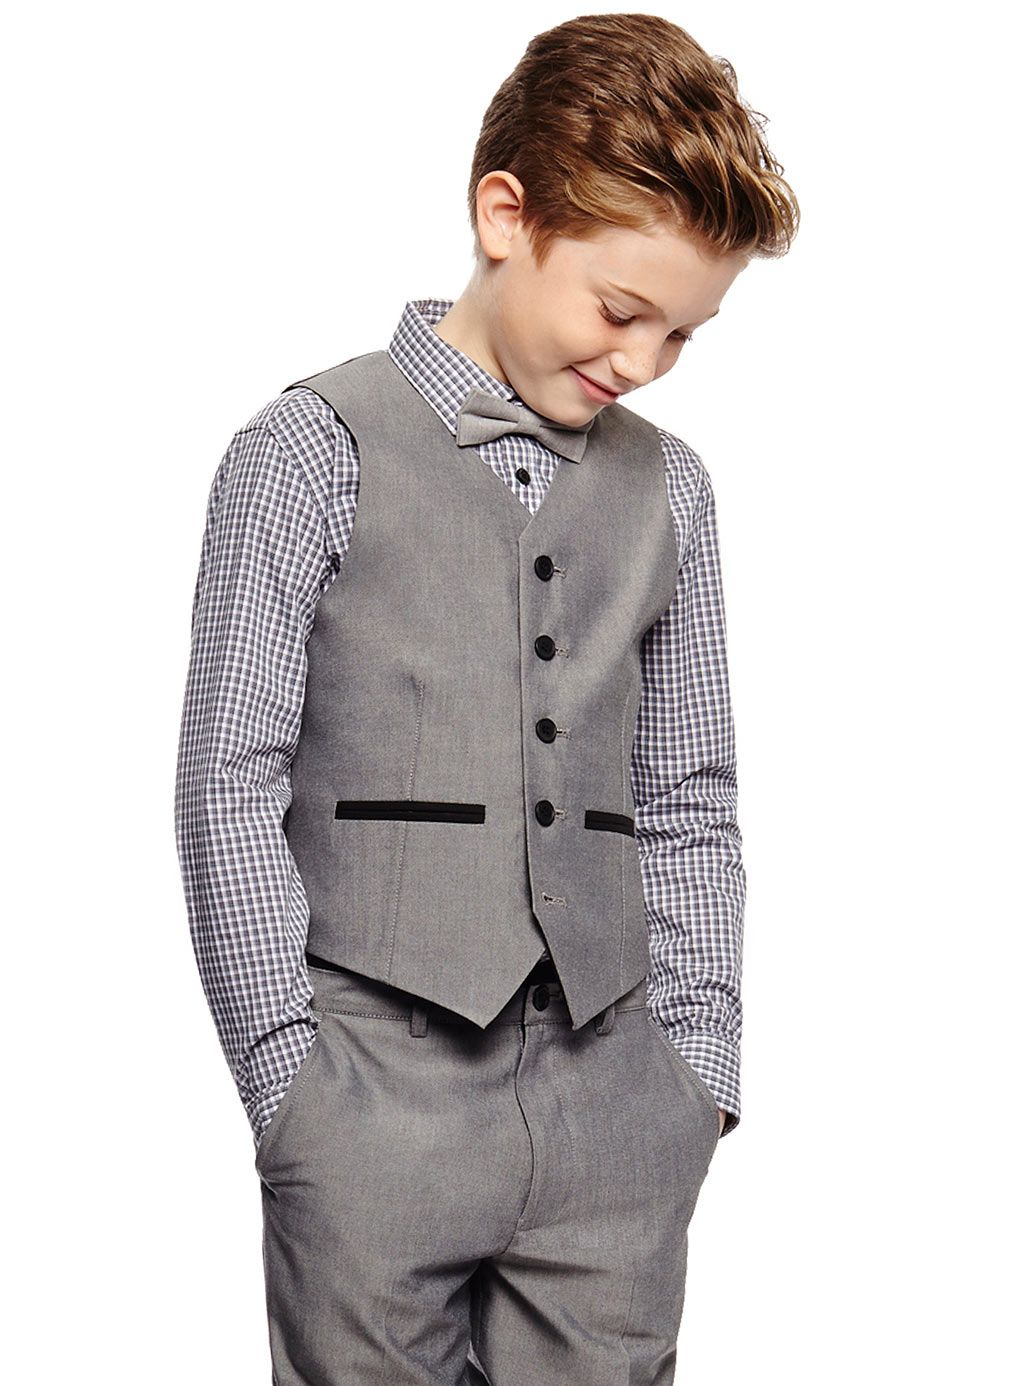 boy - Google Search | Youth | Pinterest | Kids outfits and Kids boys